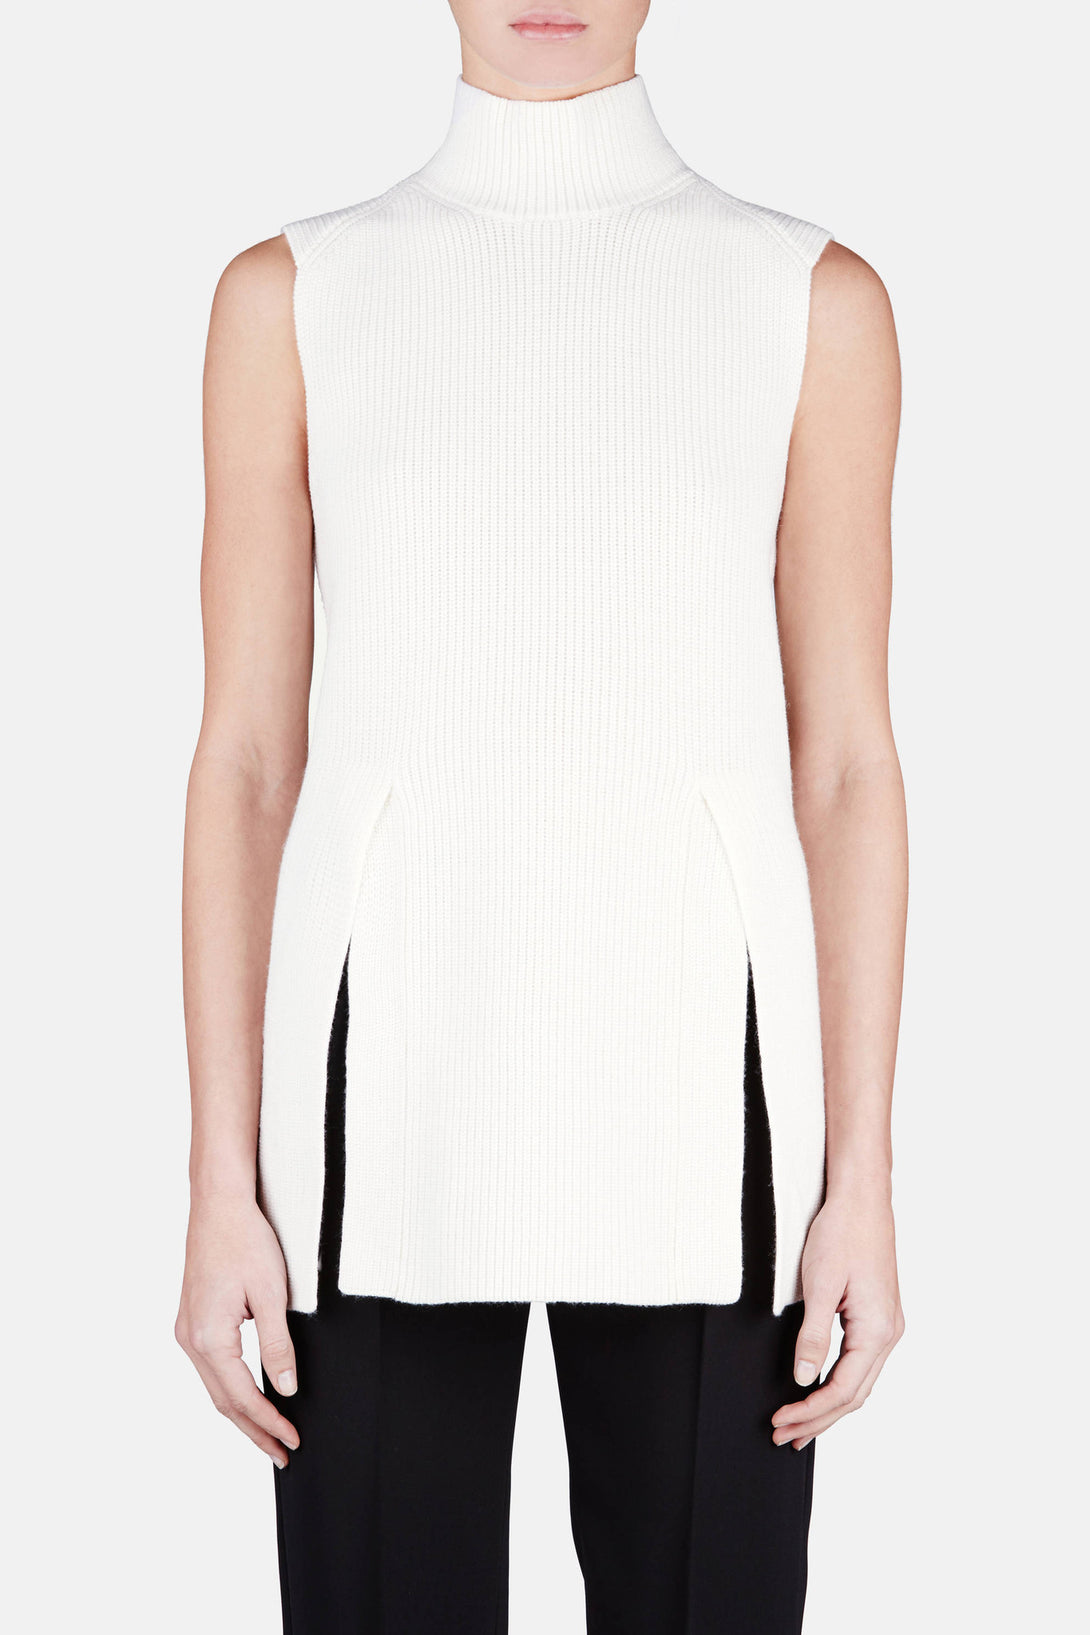 Sleeveless Turtleneck w/Slits - Off-White